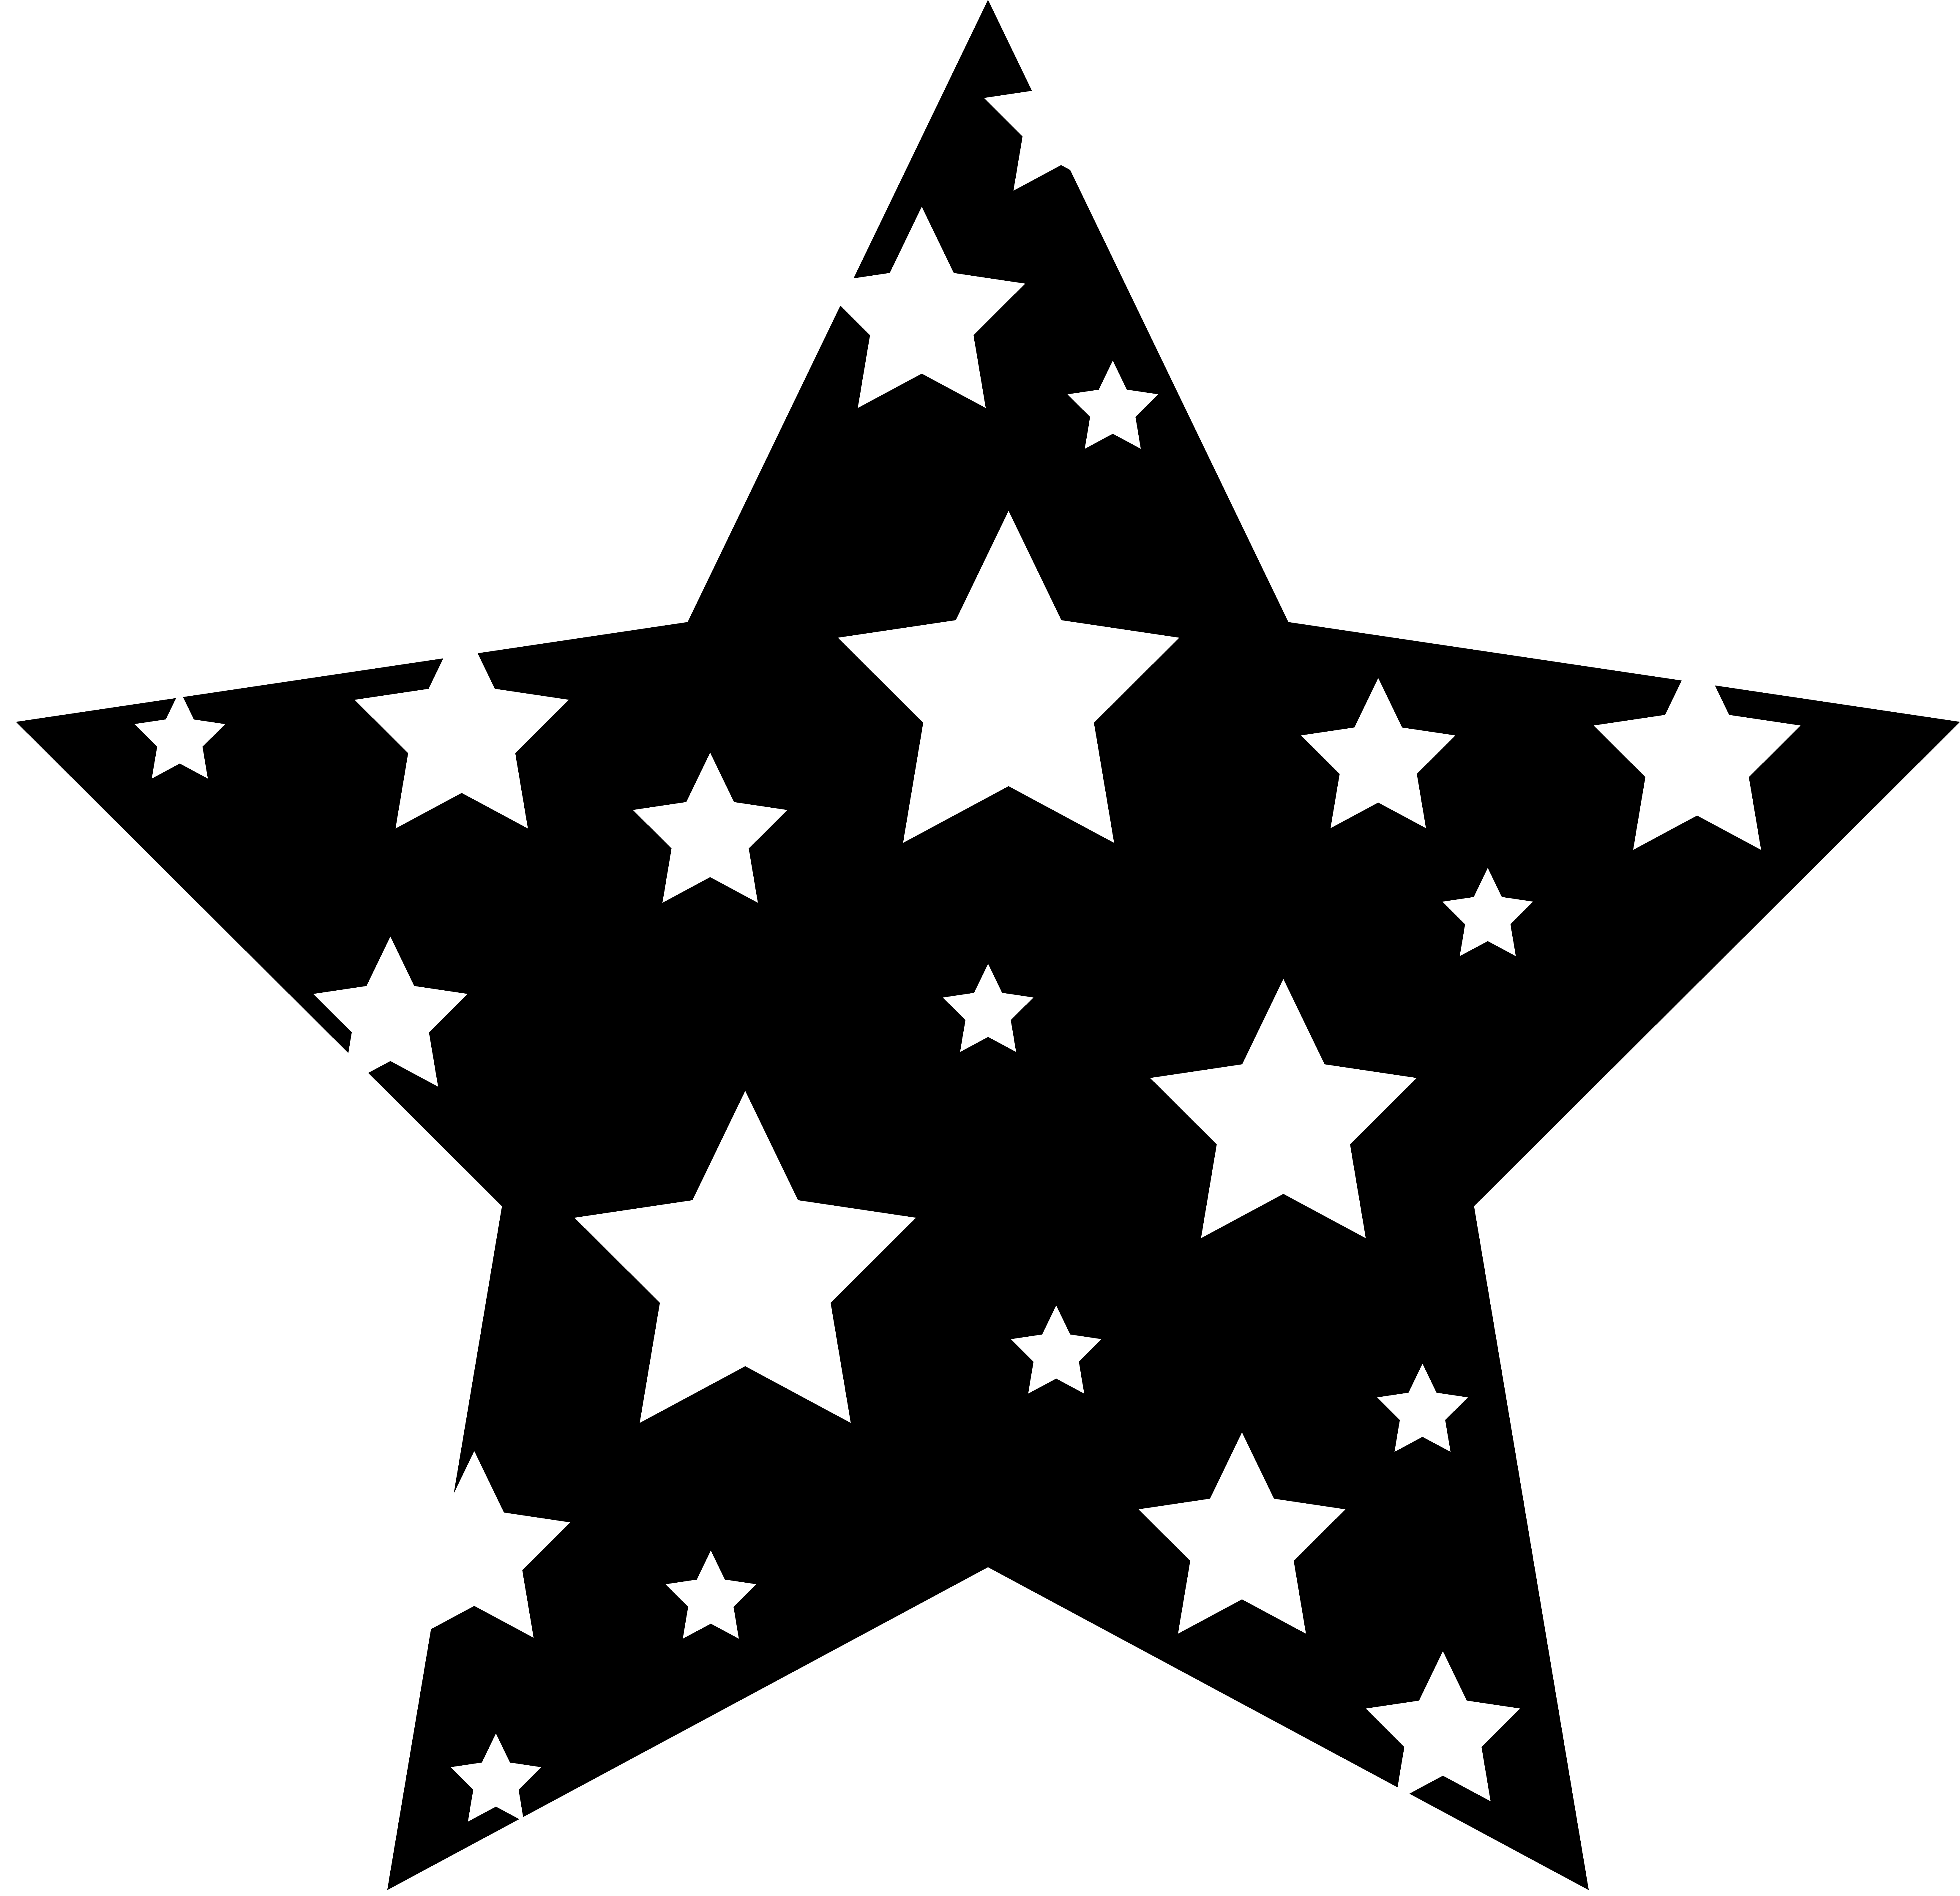 Clipart star black and white clipart download Cartoon | Black and White Starry Star - Free Clip Art | Vinyl Ideas ... clipart download